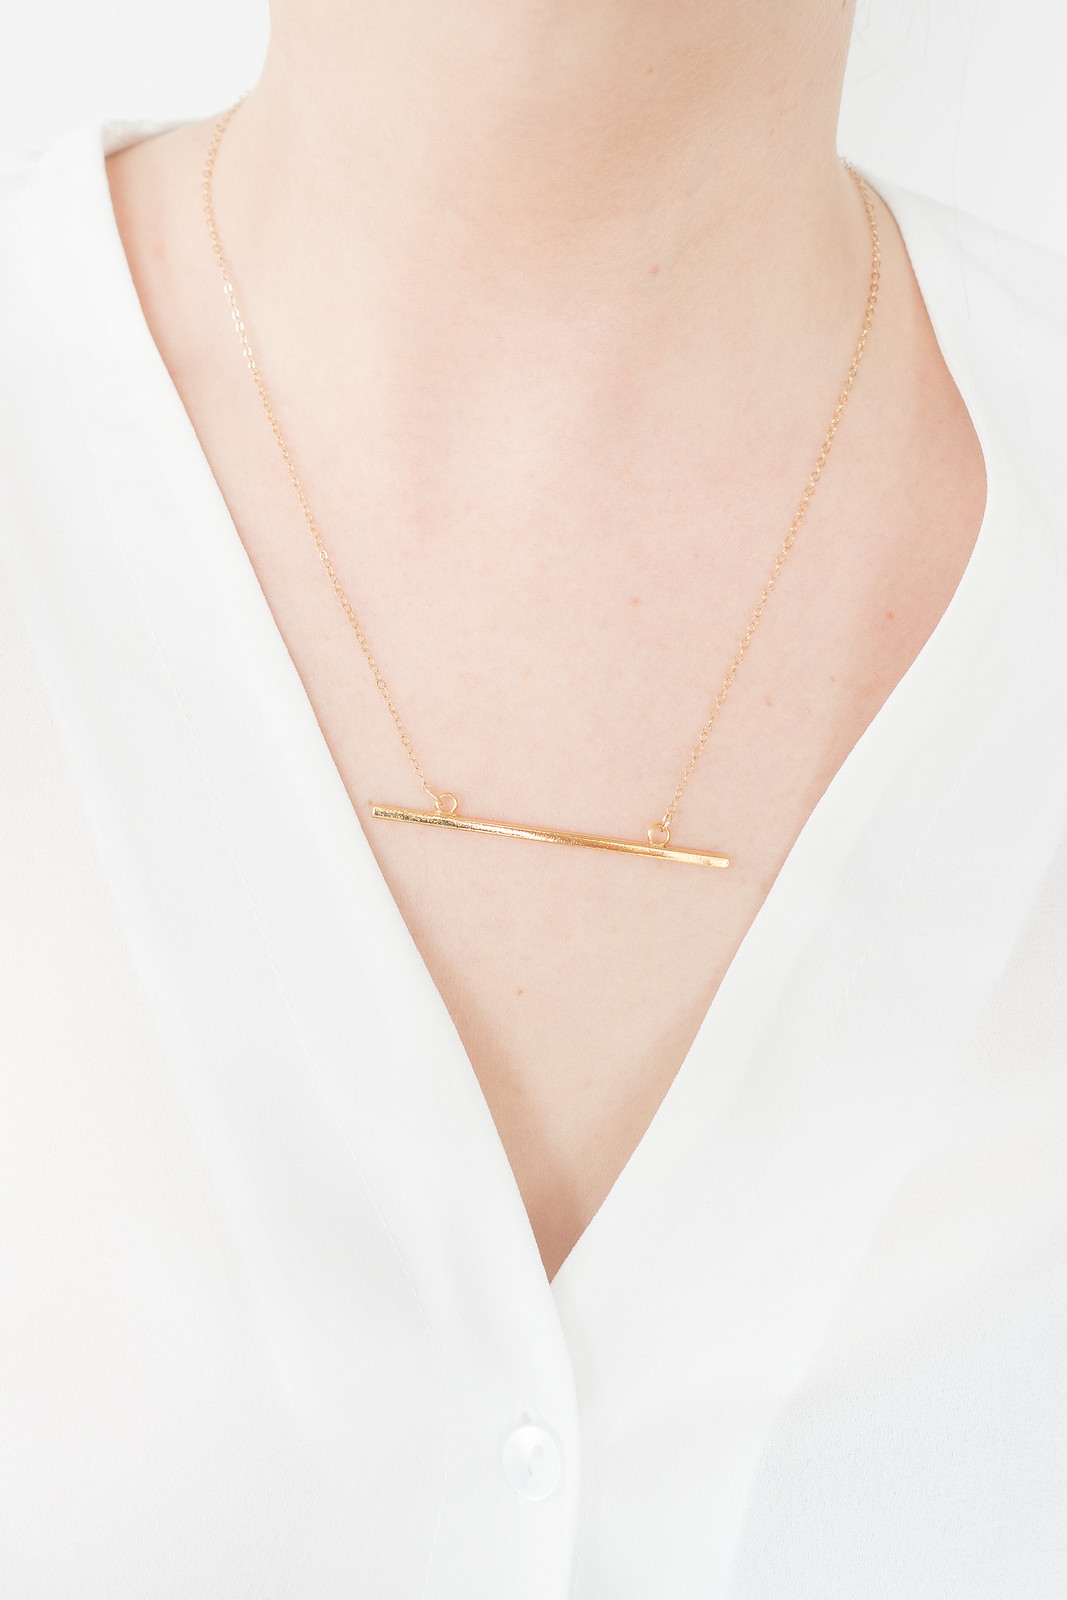 Minimal Summer Jewellery UK